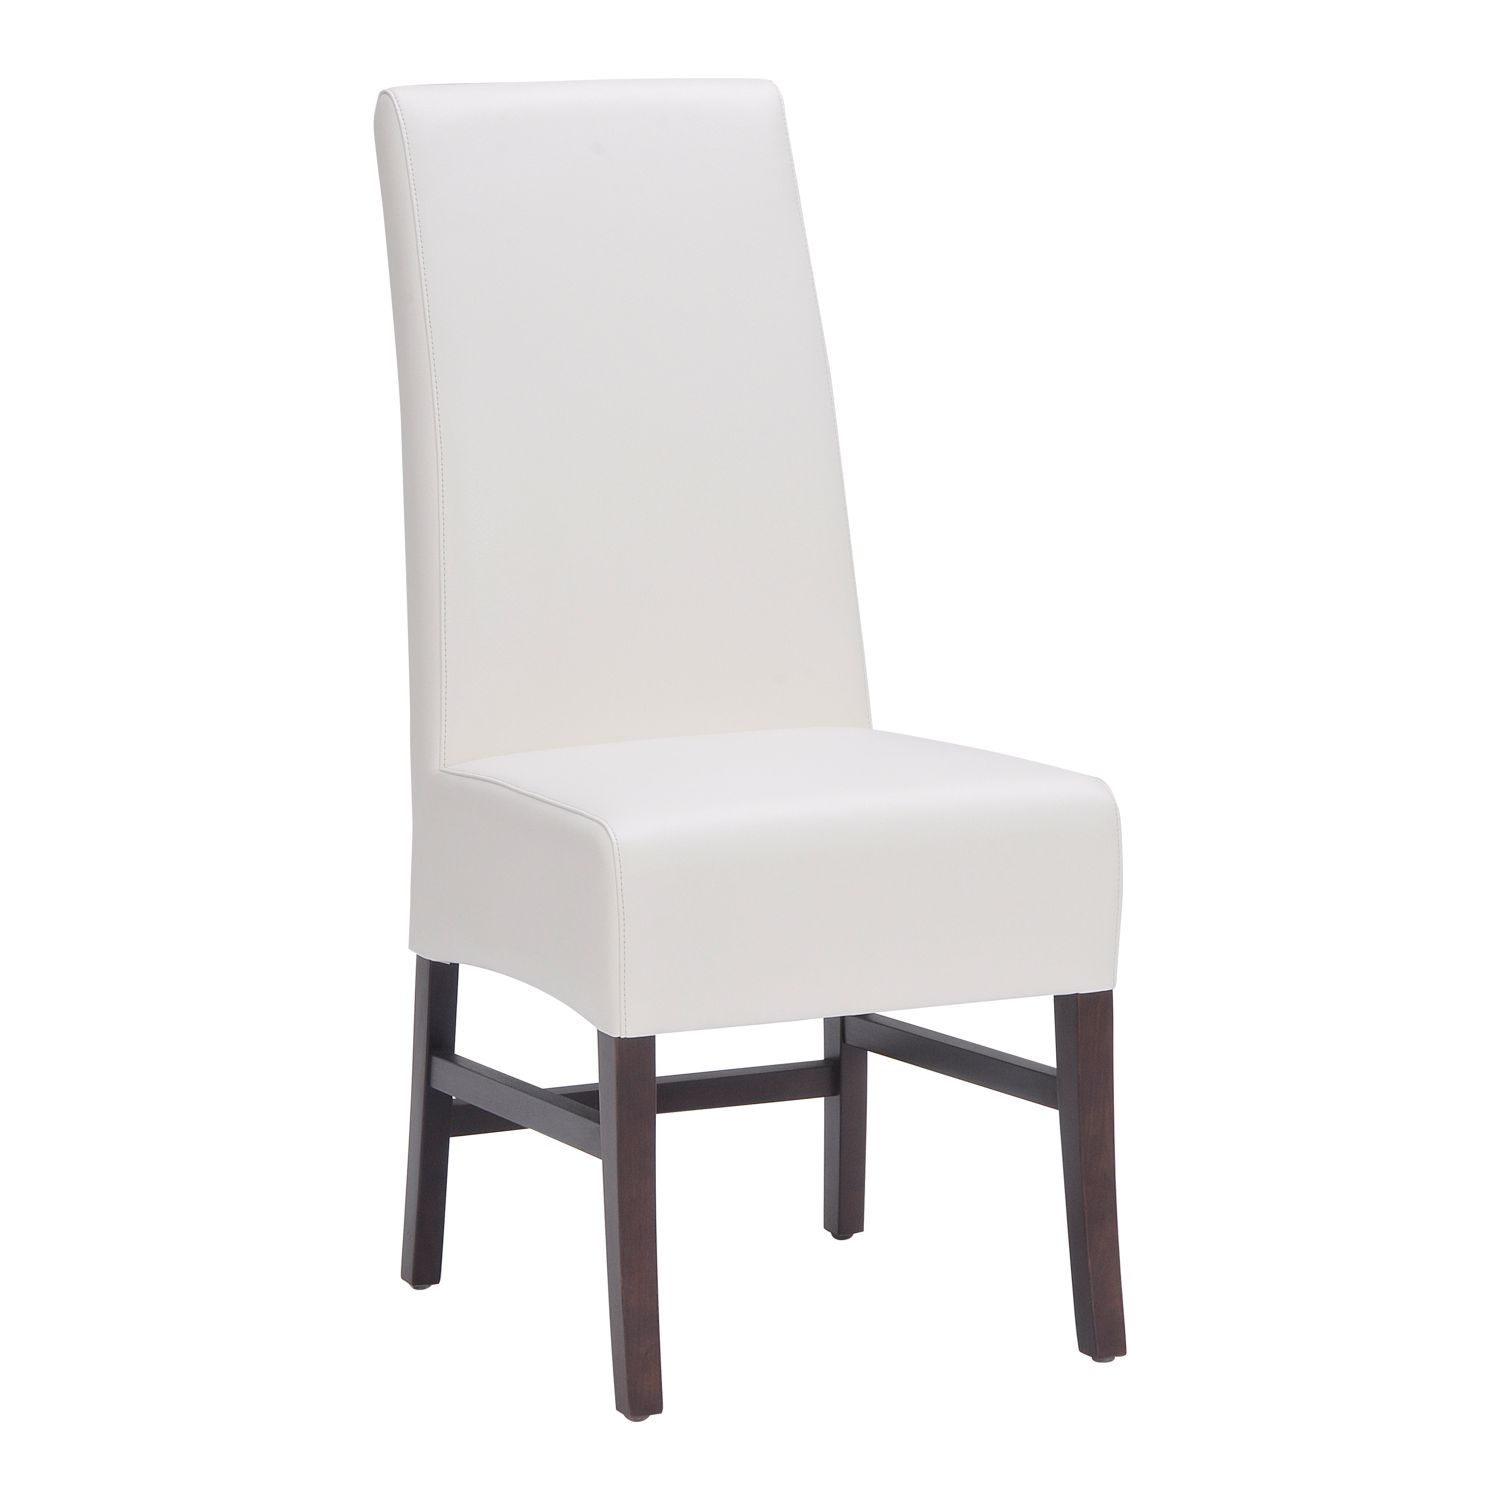 Habitat Dining Chair In Ivory Leather (Set Of 2) By Sunpan